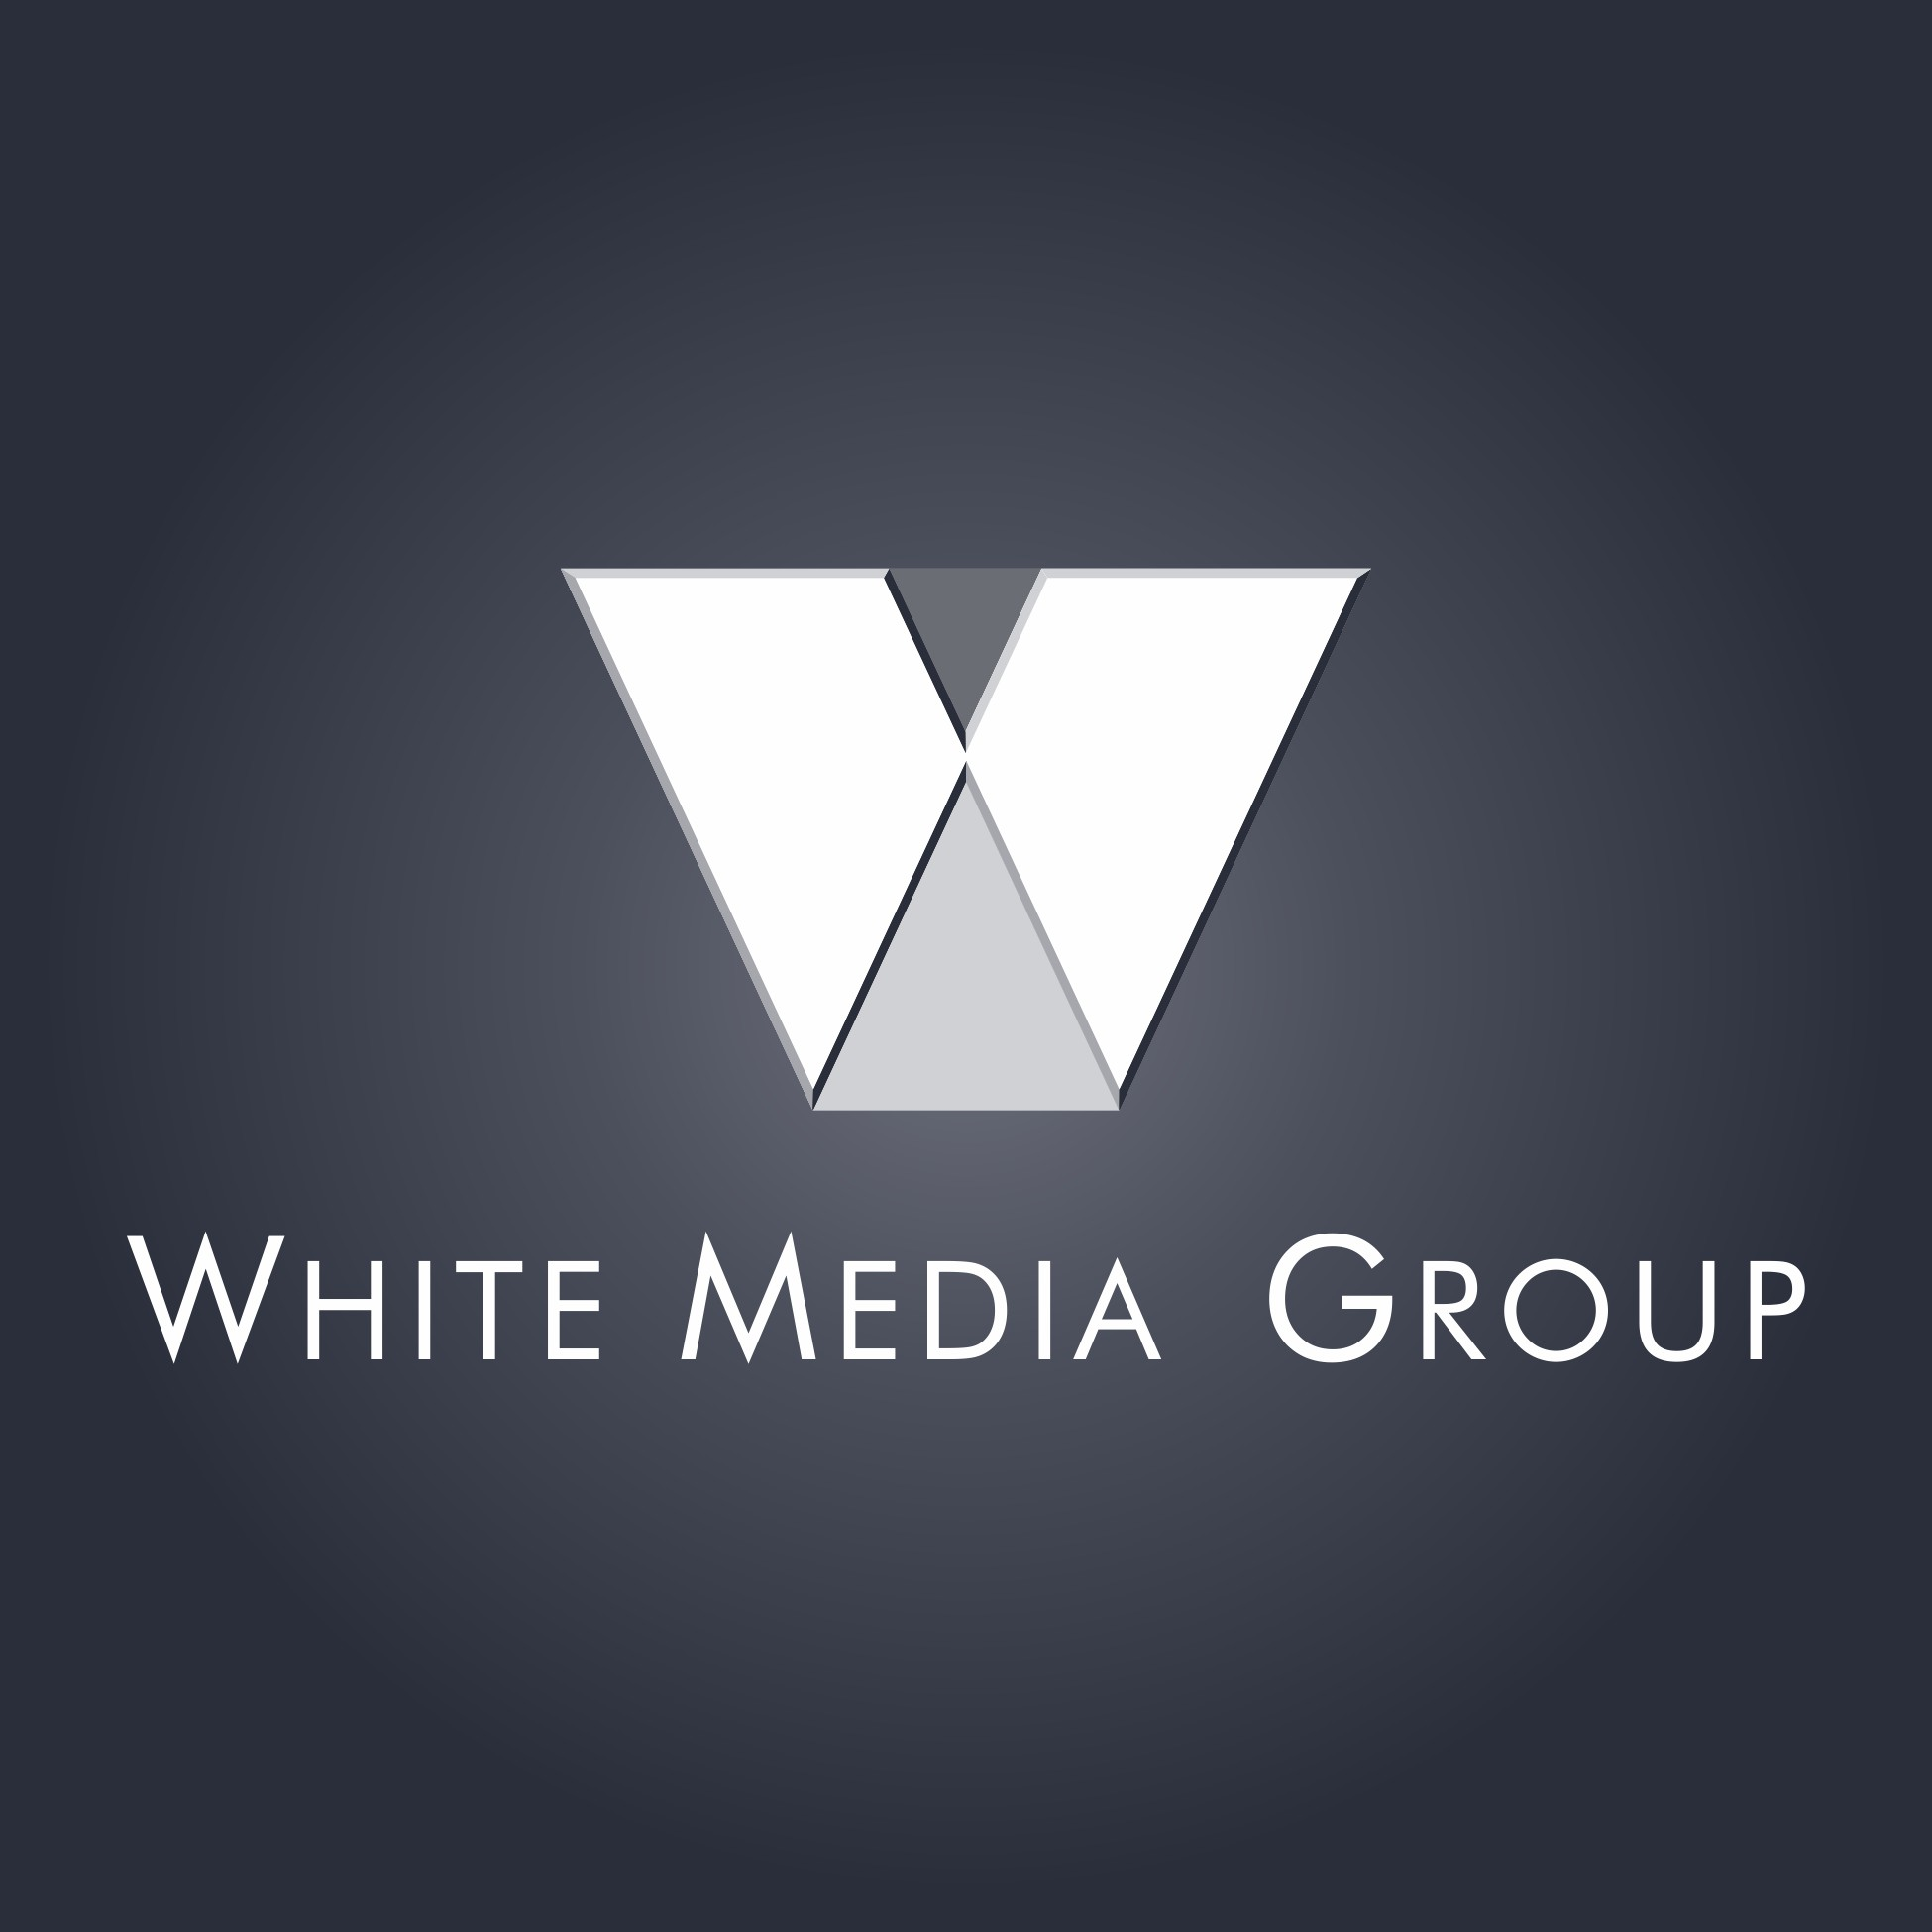 White Media Group | Logo Design by Cybergraph